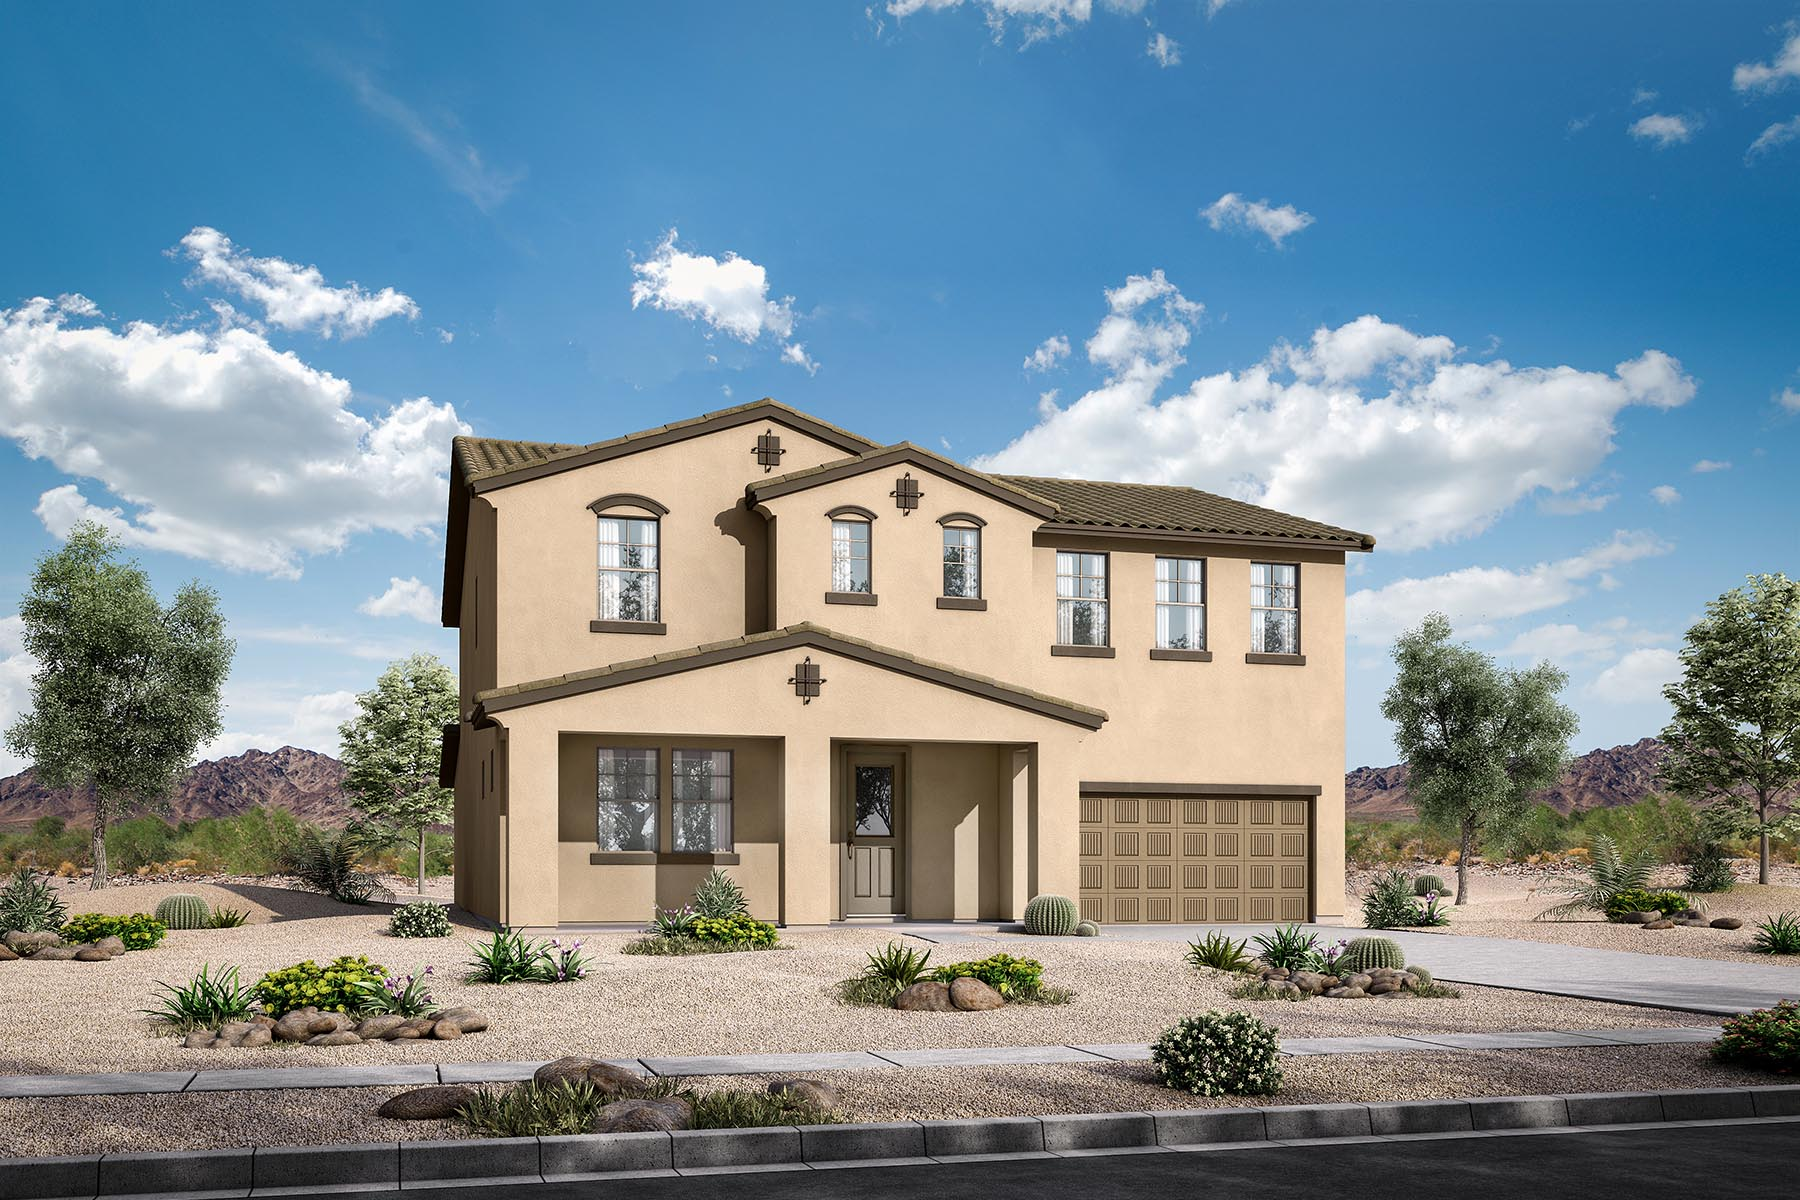 Leander Plan Elevation Front at Azure Canyon in Litchfield Park Arizona by Mattamy Homes